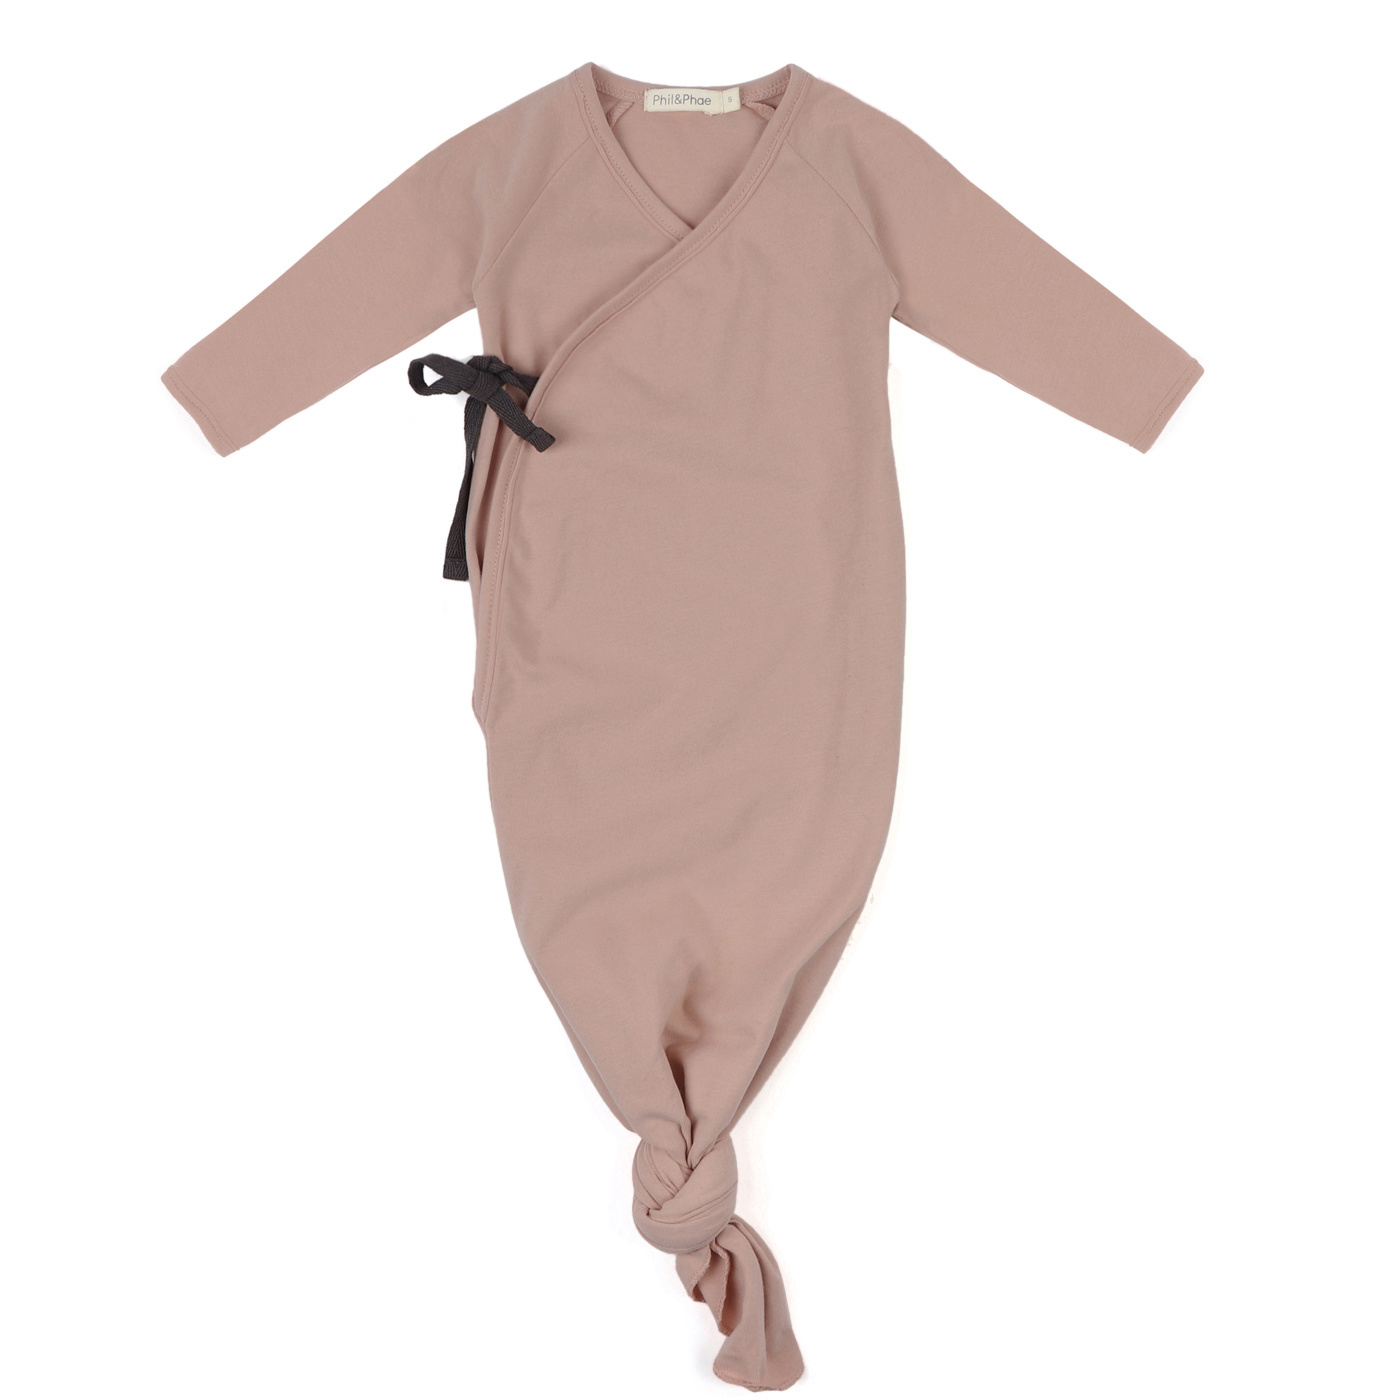 Knotted baby gown - Vintage Blush-1